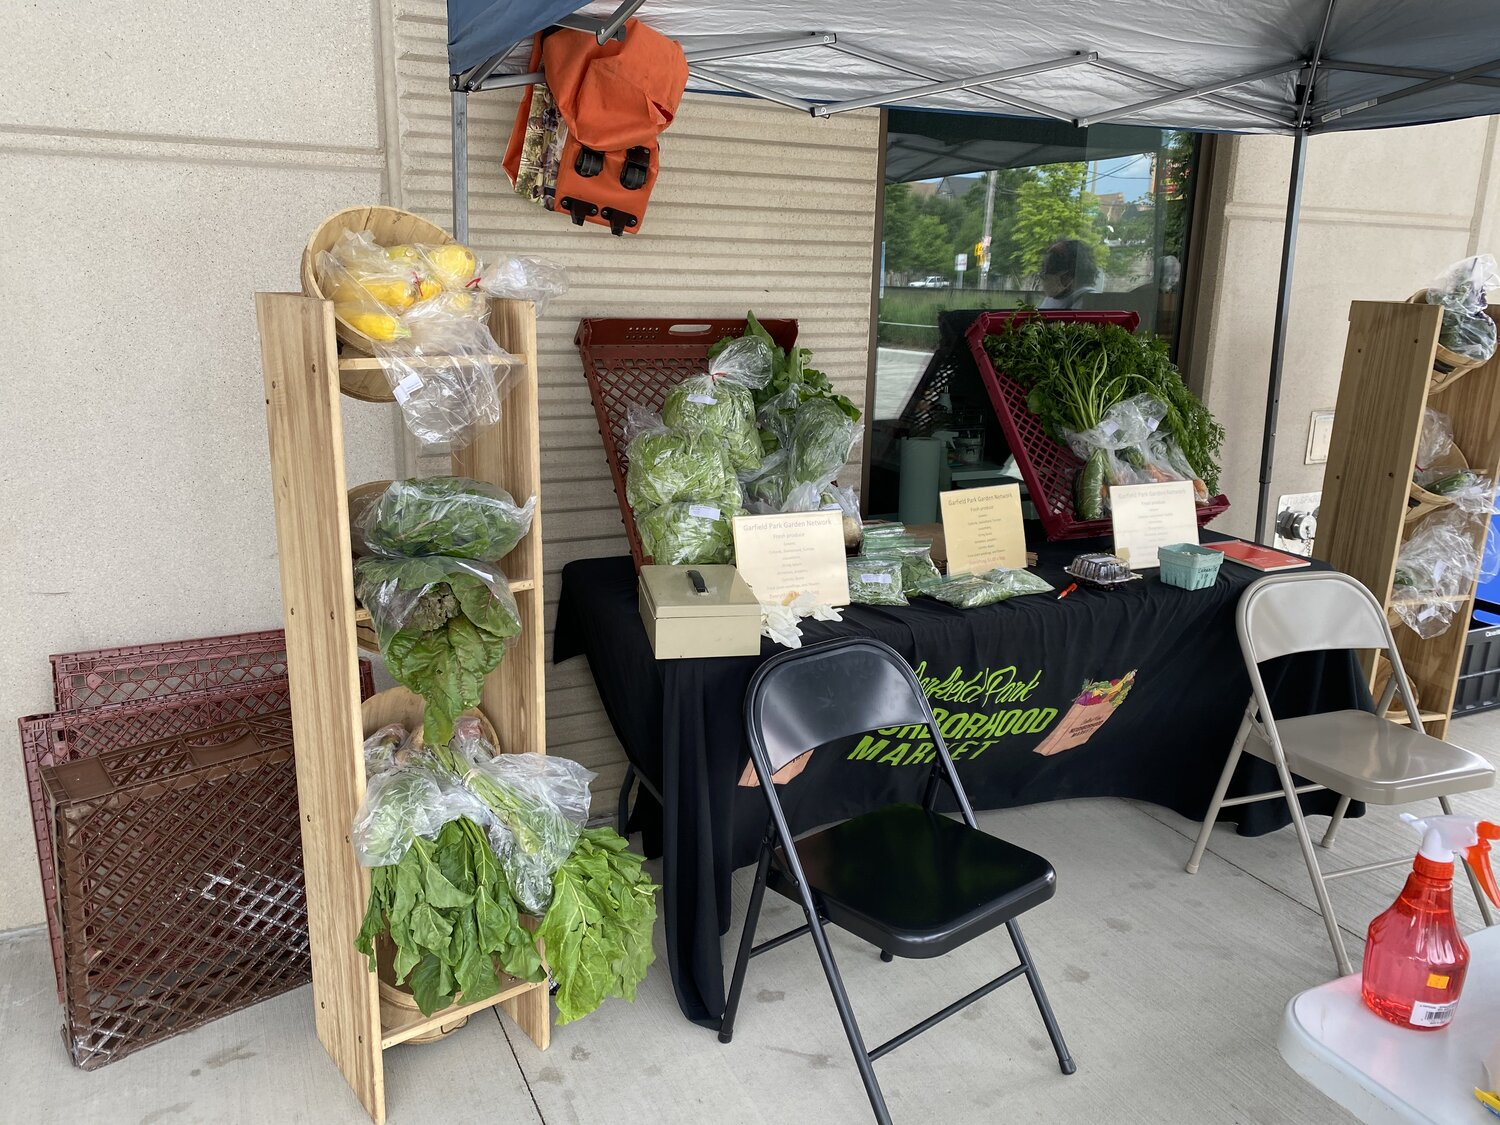 Vendors display their fresh vegetables on sale at The Garfield Park Neighborhood Market on July 11. 2020. Photo by Mariah McBride.